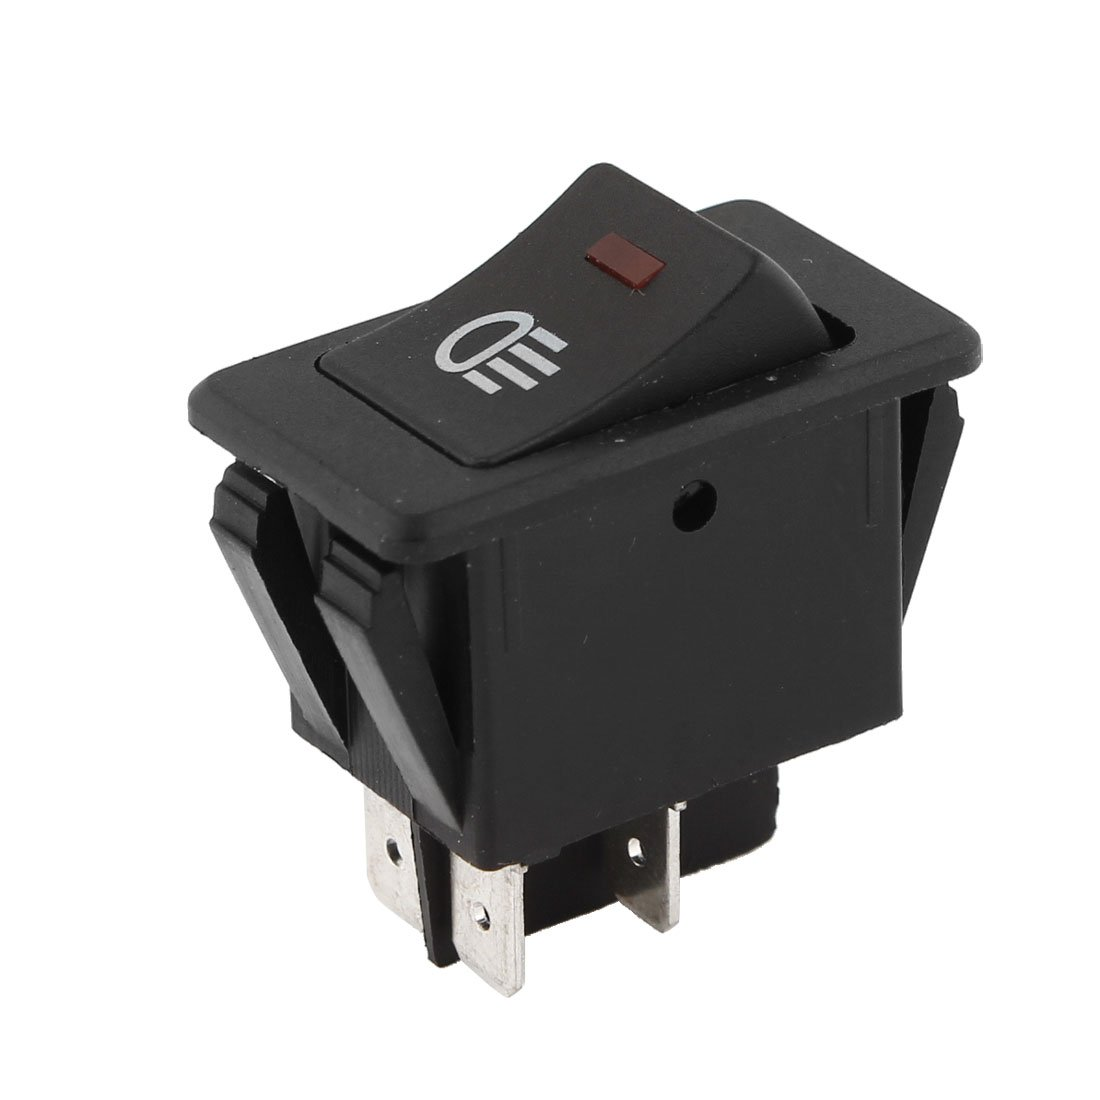 Uxcell a13050700ux0556 Plastic ON-Off 4 Pins Vehicle Headlamp Fog Light Switch Button DC 12V Unknown